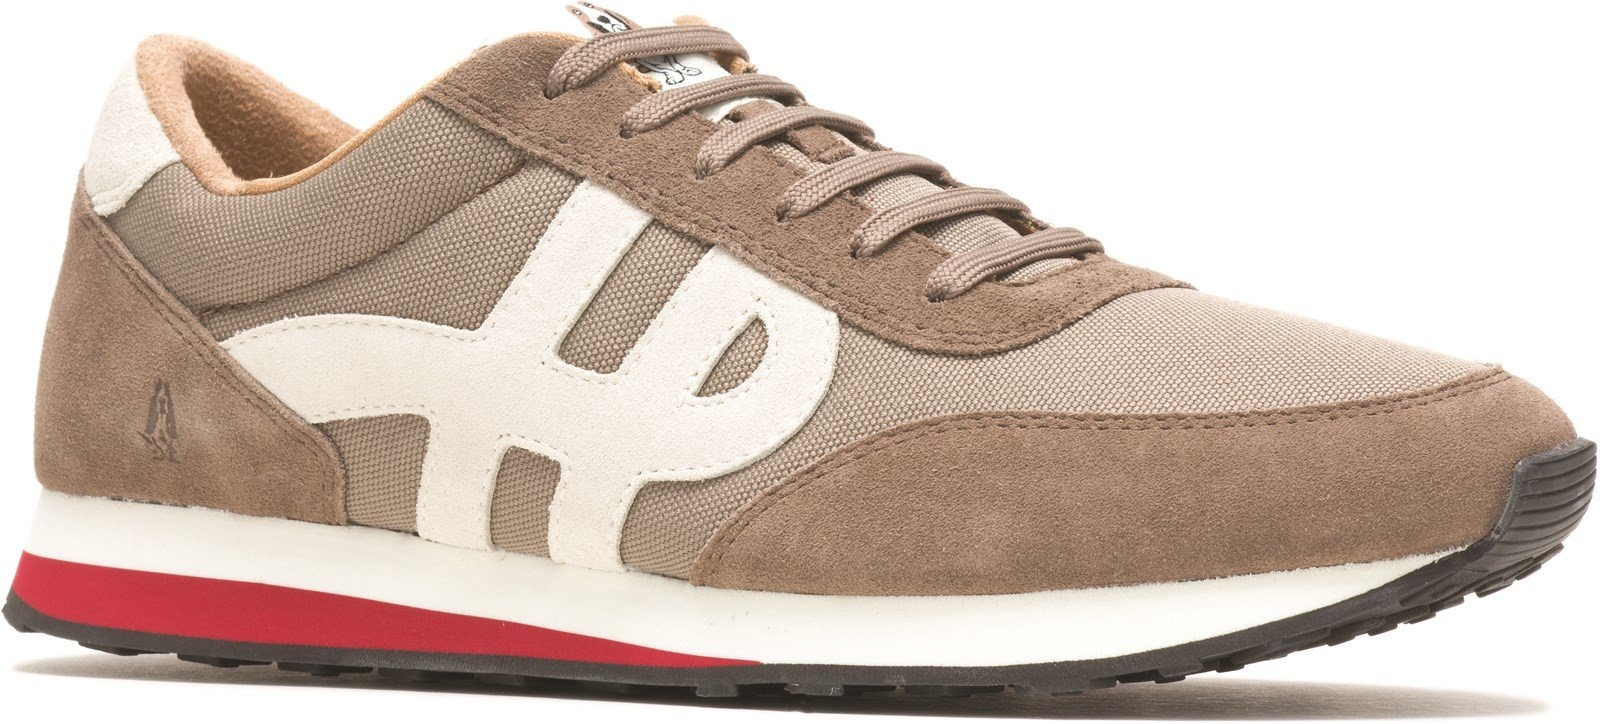 Hush Puppies Men's Seventy8 Lace Trainer Various Colours 31272 - Fossil 6